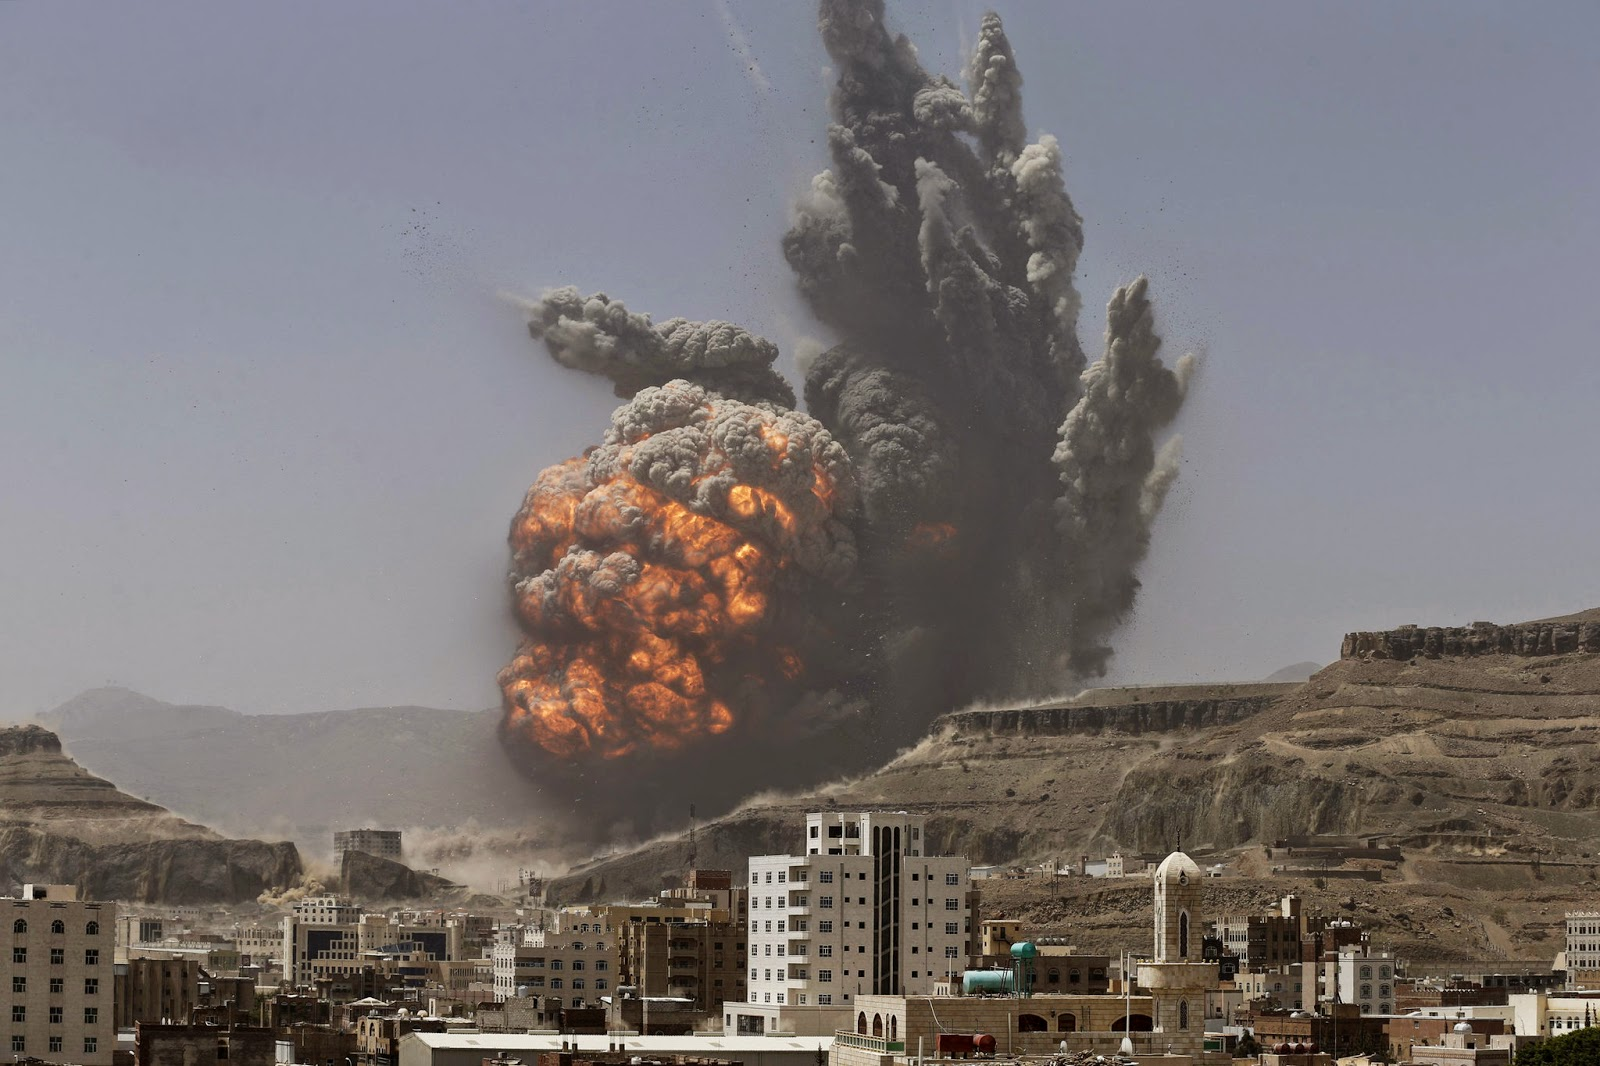 e7fb8a799f An air strike on a Scud missile base in the Houthi-controlled Yemeni  capital Sanaa triggered a big explosion that killed 25 people and wounded  almost 400 on ...